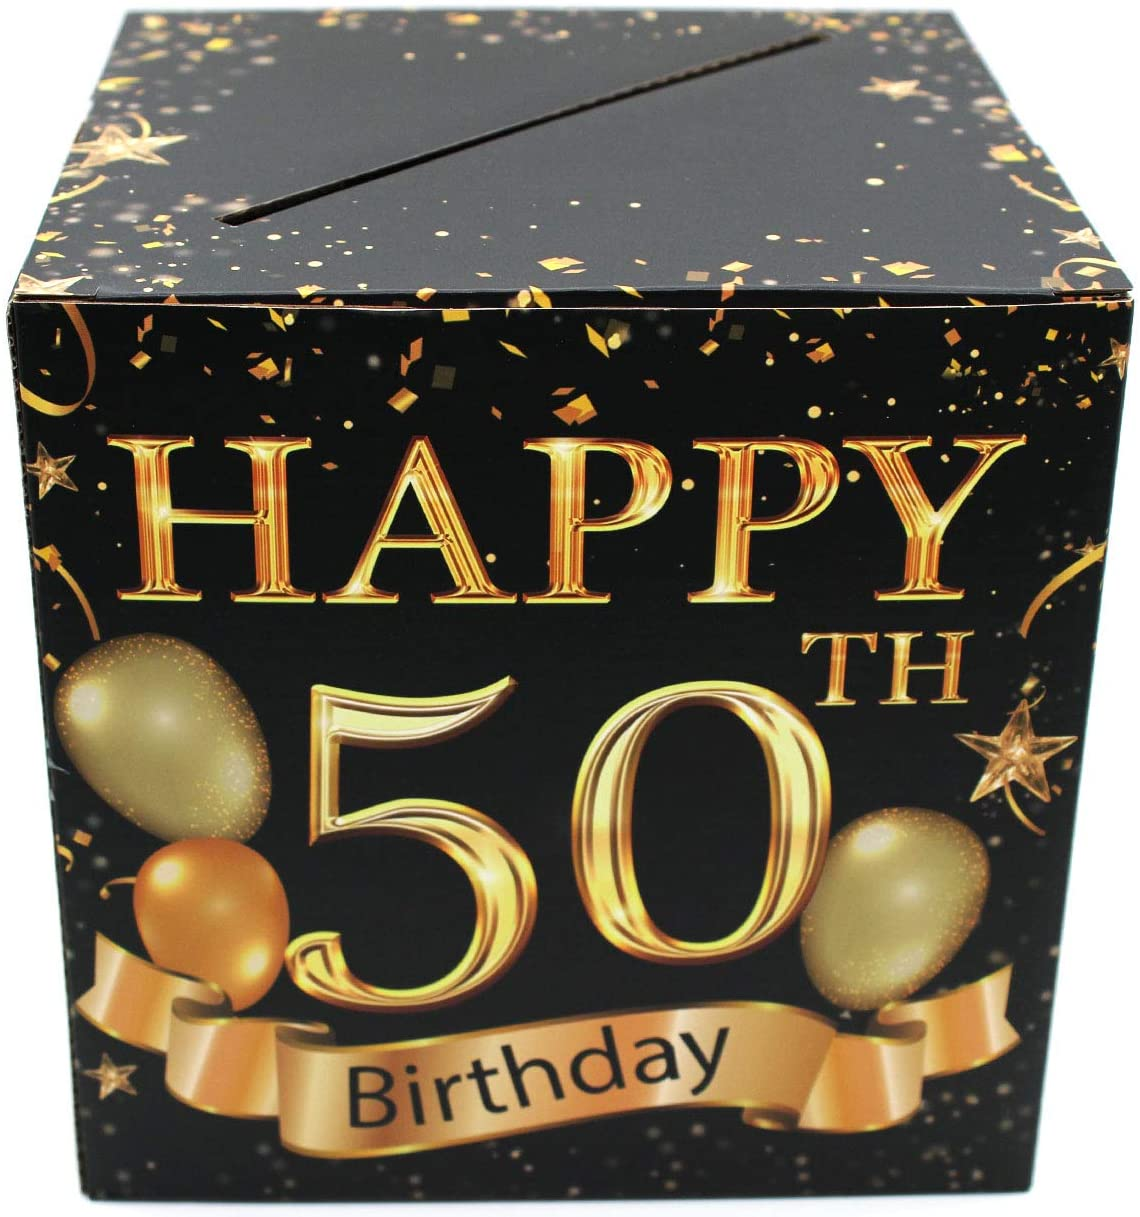 Buildinest 50th Birthday Party Decorations Box – Cheers to 50 Years, 50 Birthday Party Supplies – 1 Set(Box-50-BLK)